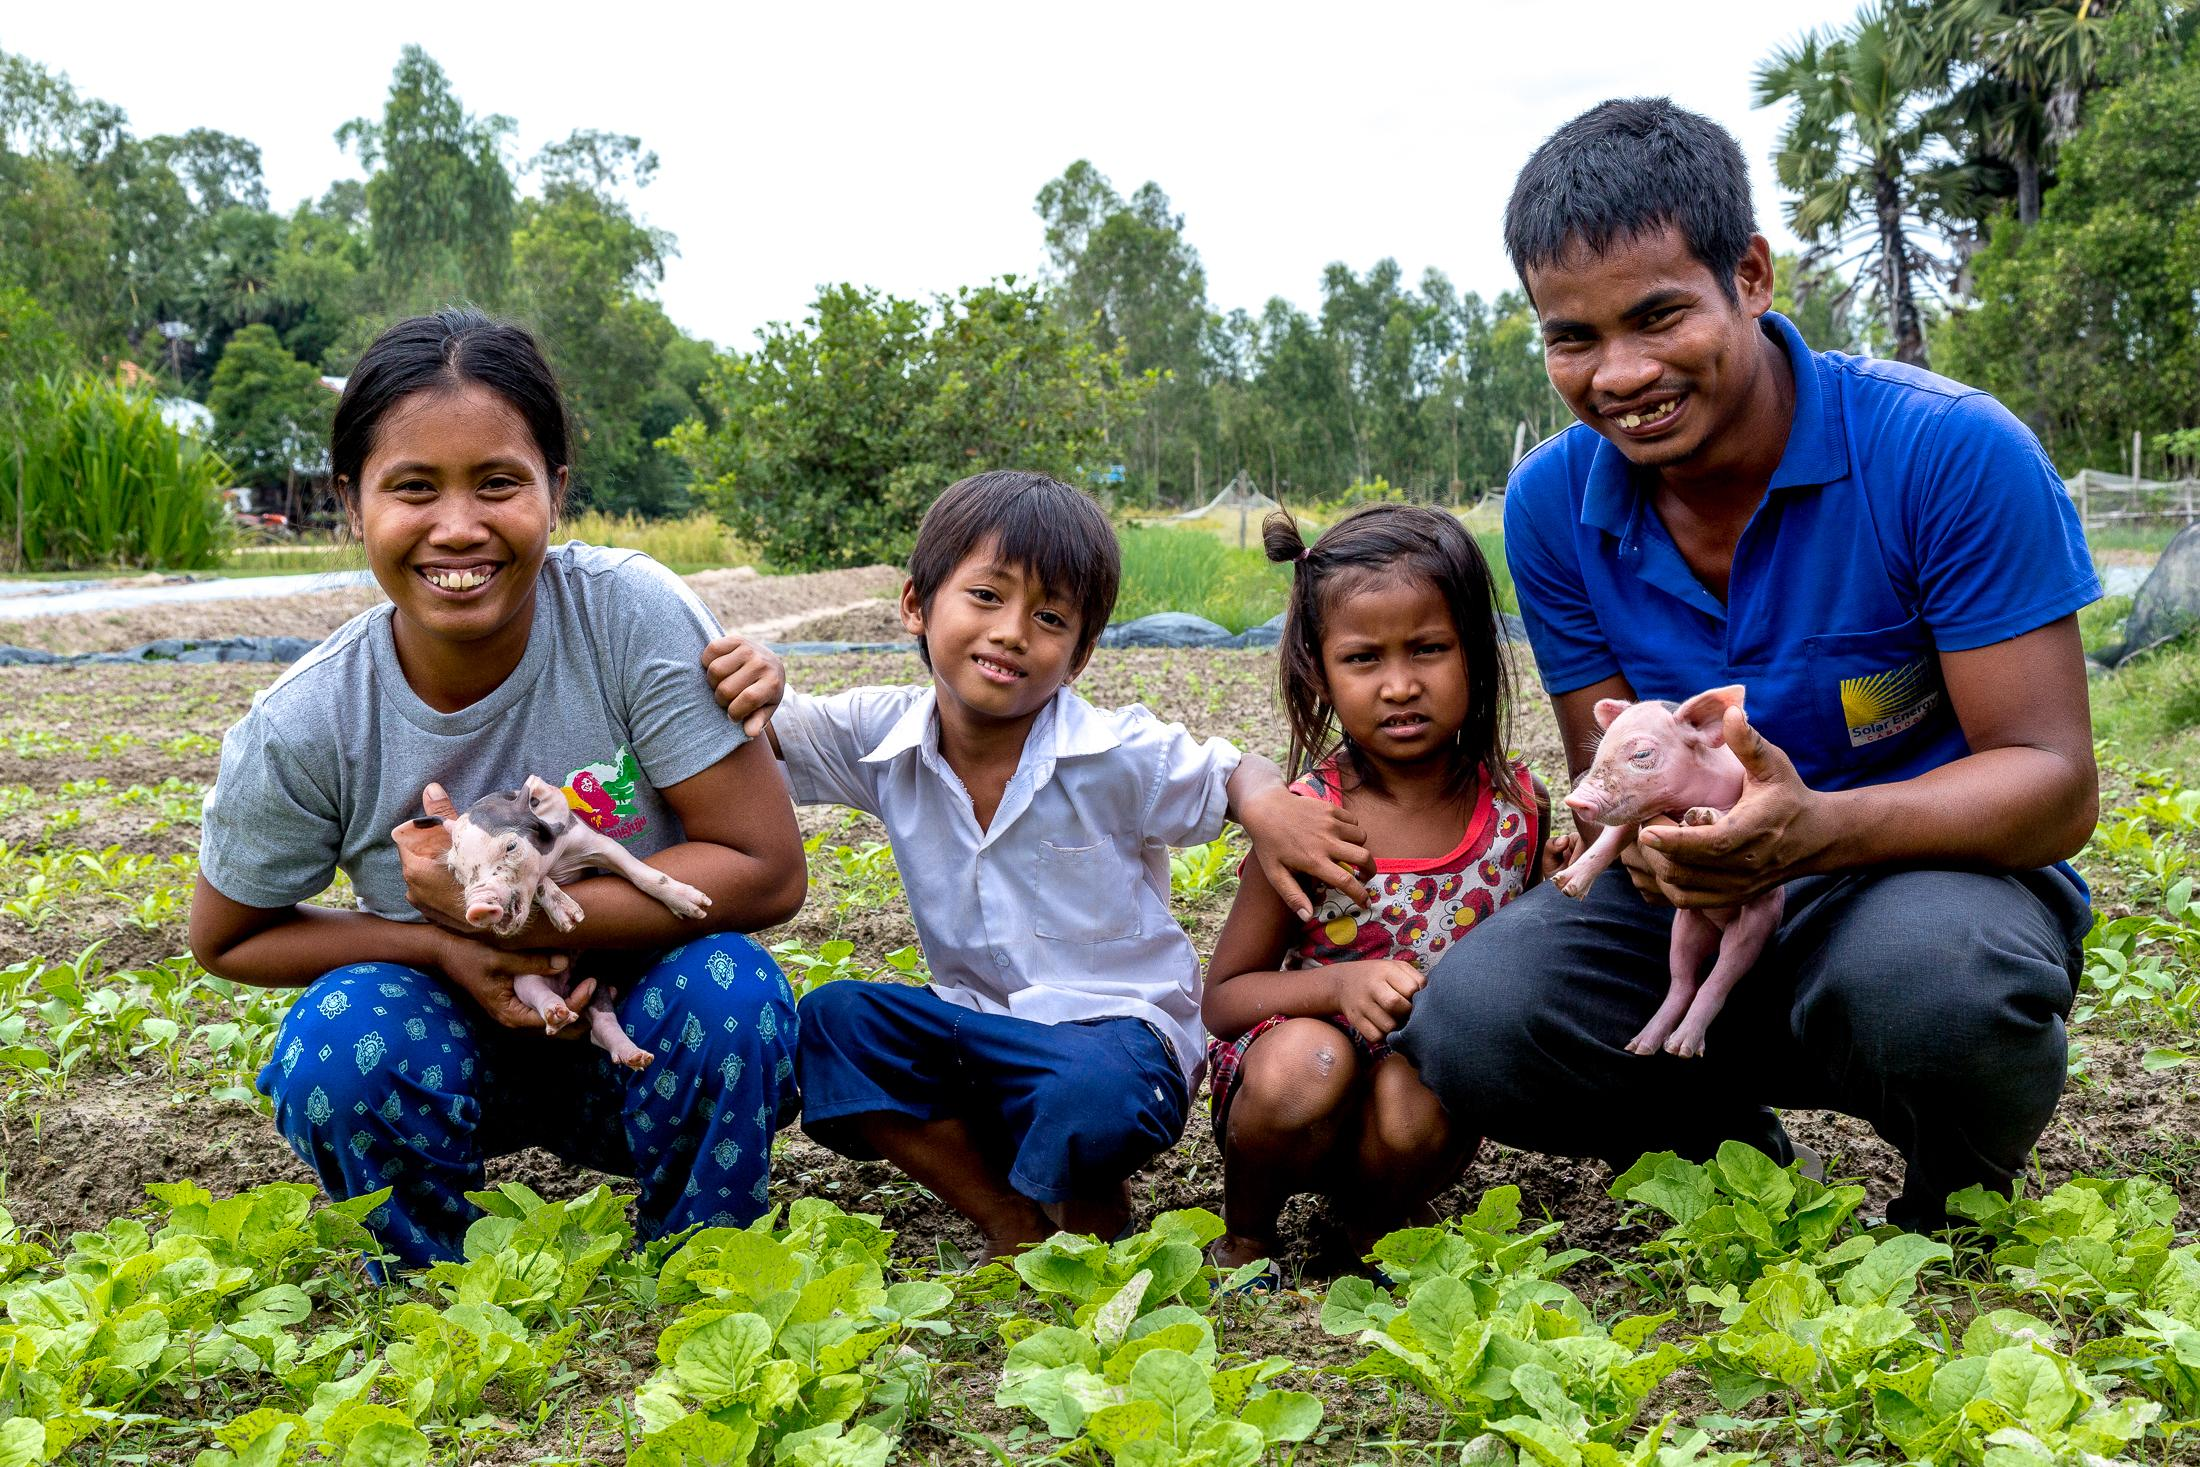 SVAY THOM, CAMBODIA - DECEMBER 05: Ou Kongkea (29) (left) and her husband Loek Bunthoeun (28) (right) pose for a photo holding piglets with their children, Vat Somavotey (5) (left) and Vat Samady (7) (right), in a vegetable farm planted outside their home on December 05, 2015 in Svay Thom, Cambodia. Photo: © Omar Havana for Heifer International